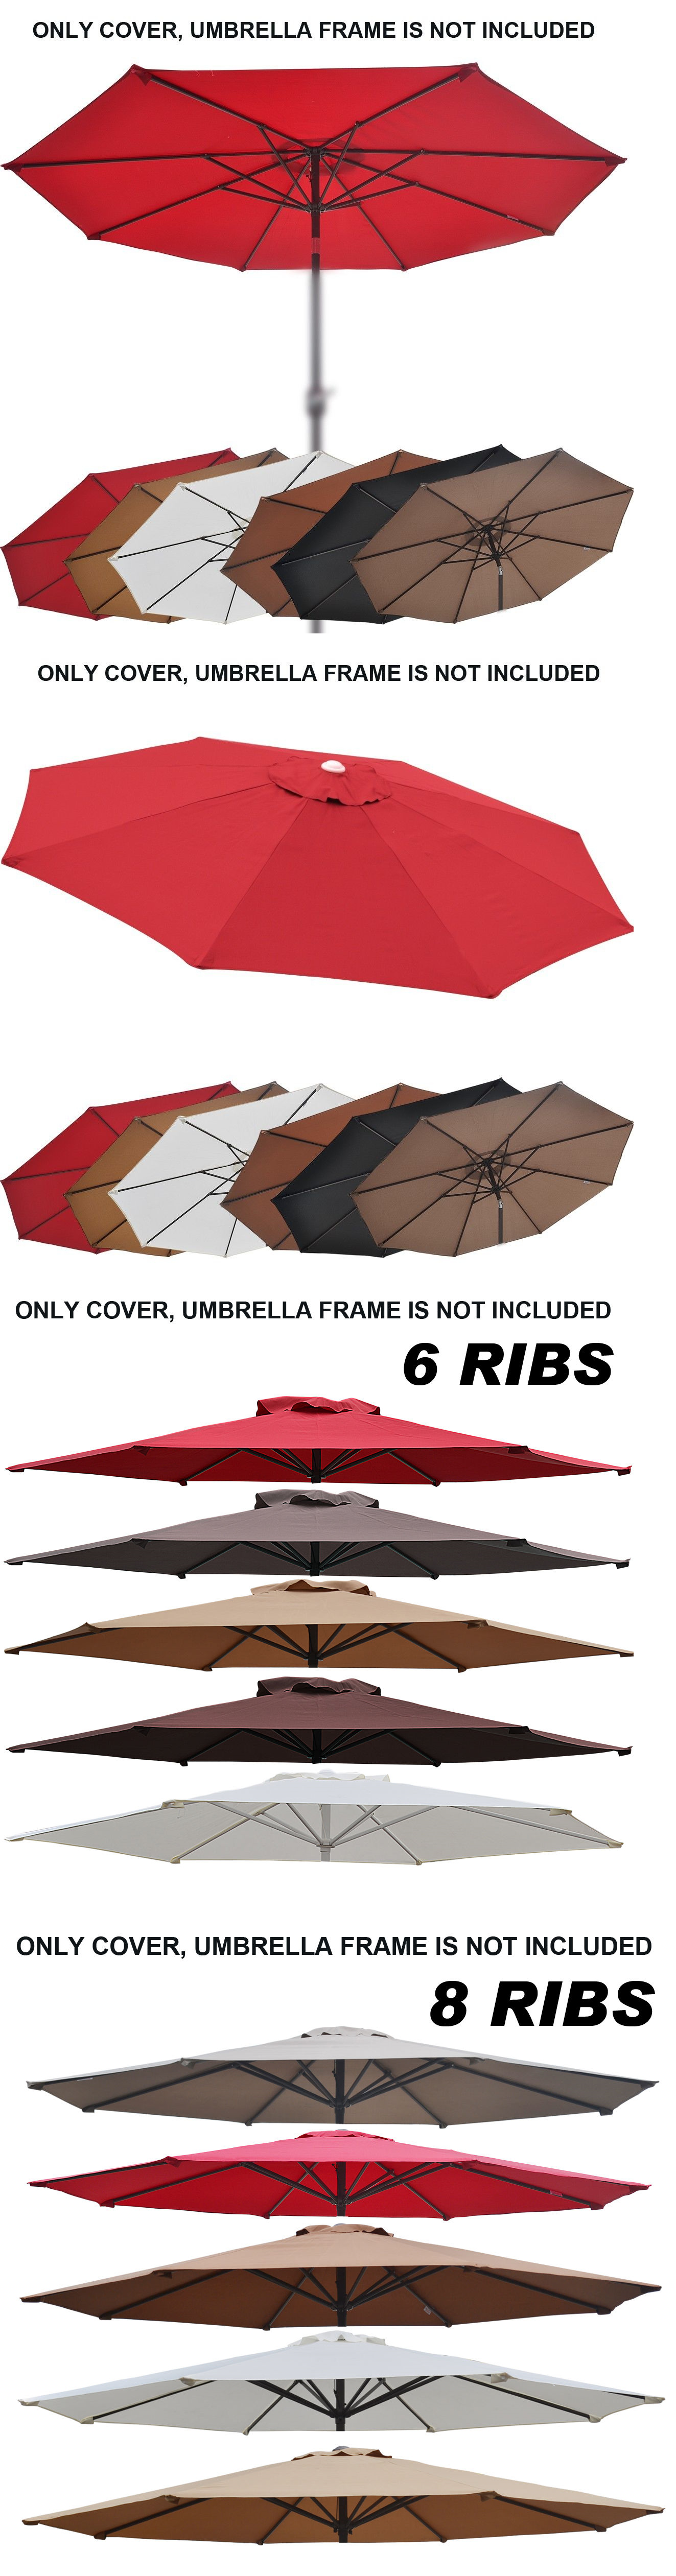 replacement garden ribs canopy frontgate deck swing winds patio costco umbrella img